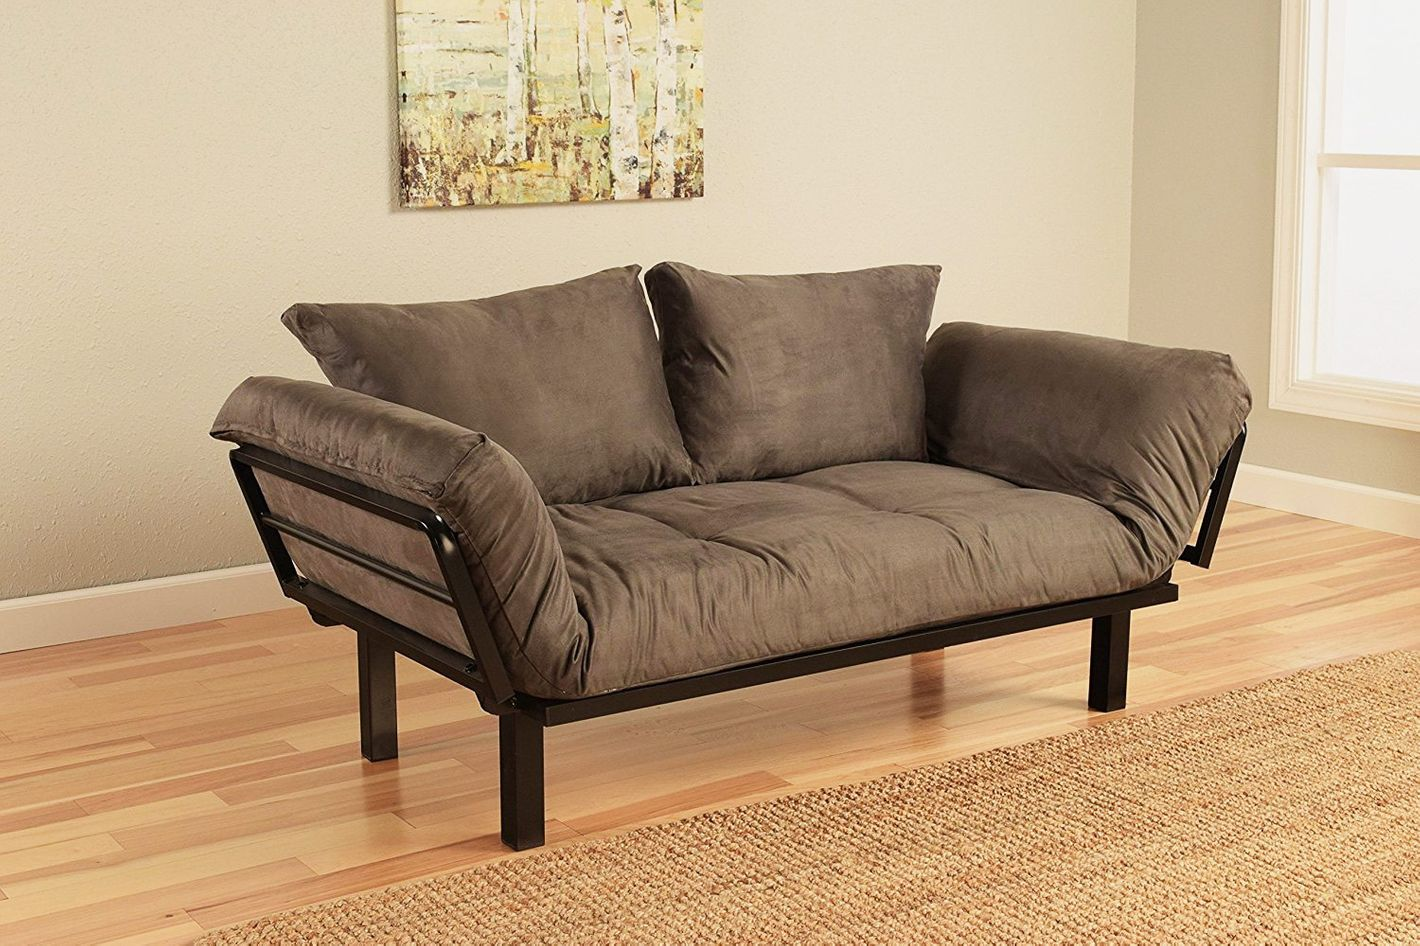 Kodiak Best Futon Lounger